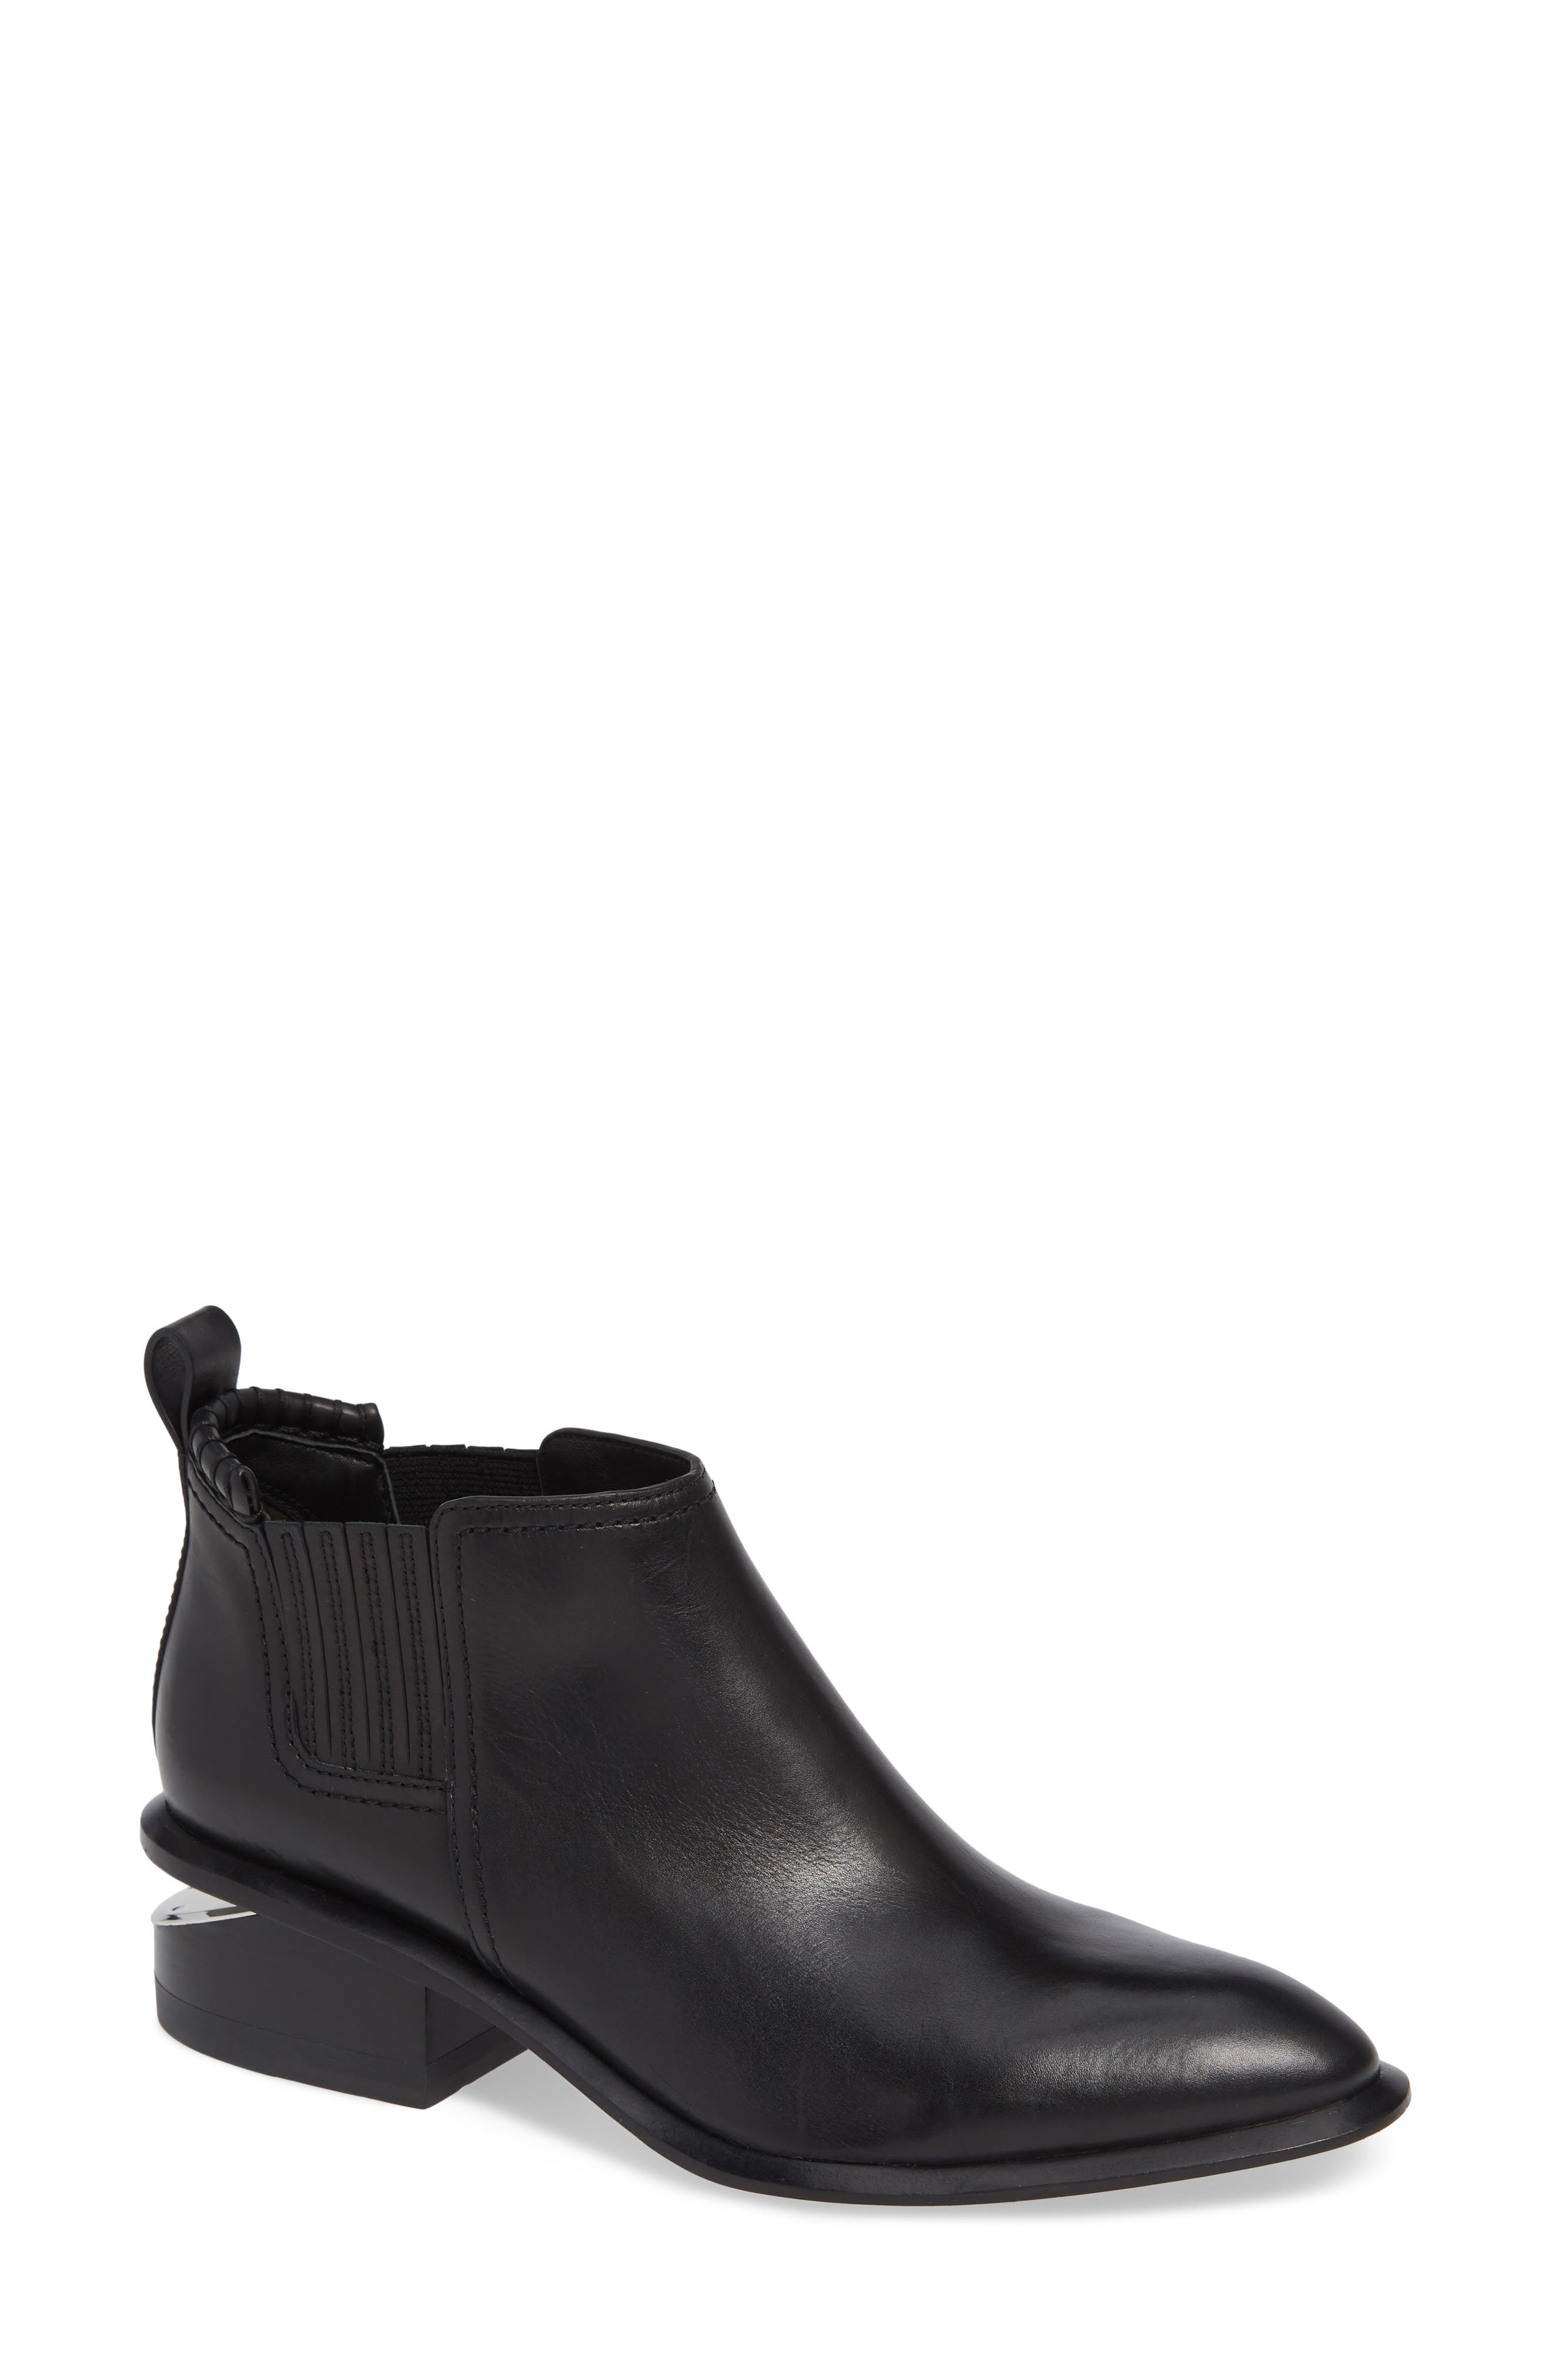 ALEXANDER WANG Kori Boot, Main, color, BLACK/ SILVER